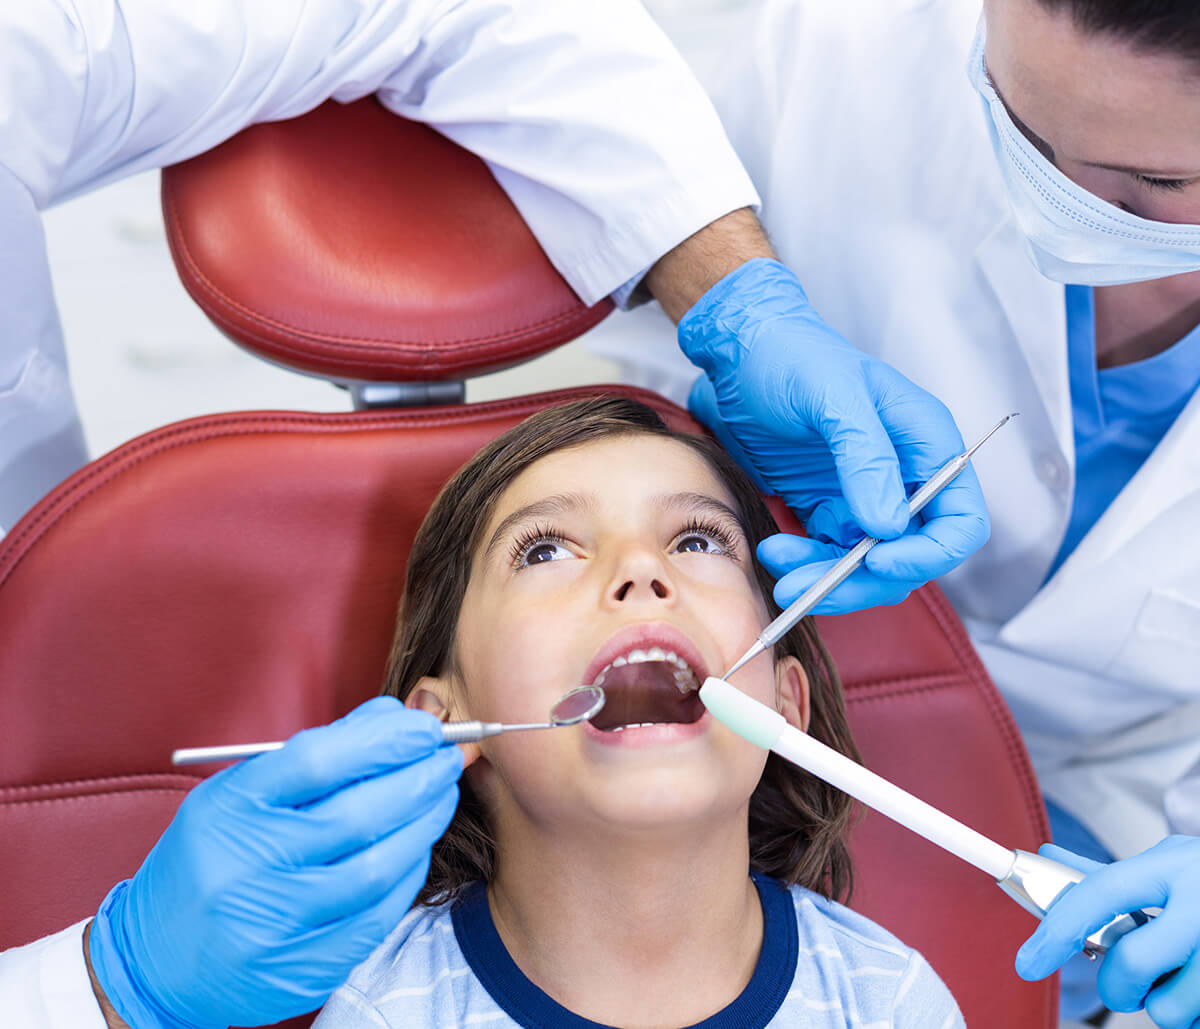 Pediatric Dentist in Greensboro Area Makes Teeth Cleanings for Kids Fun